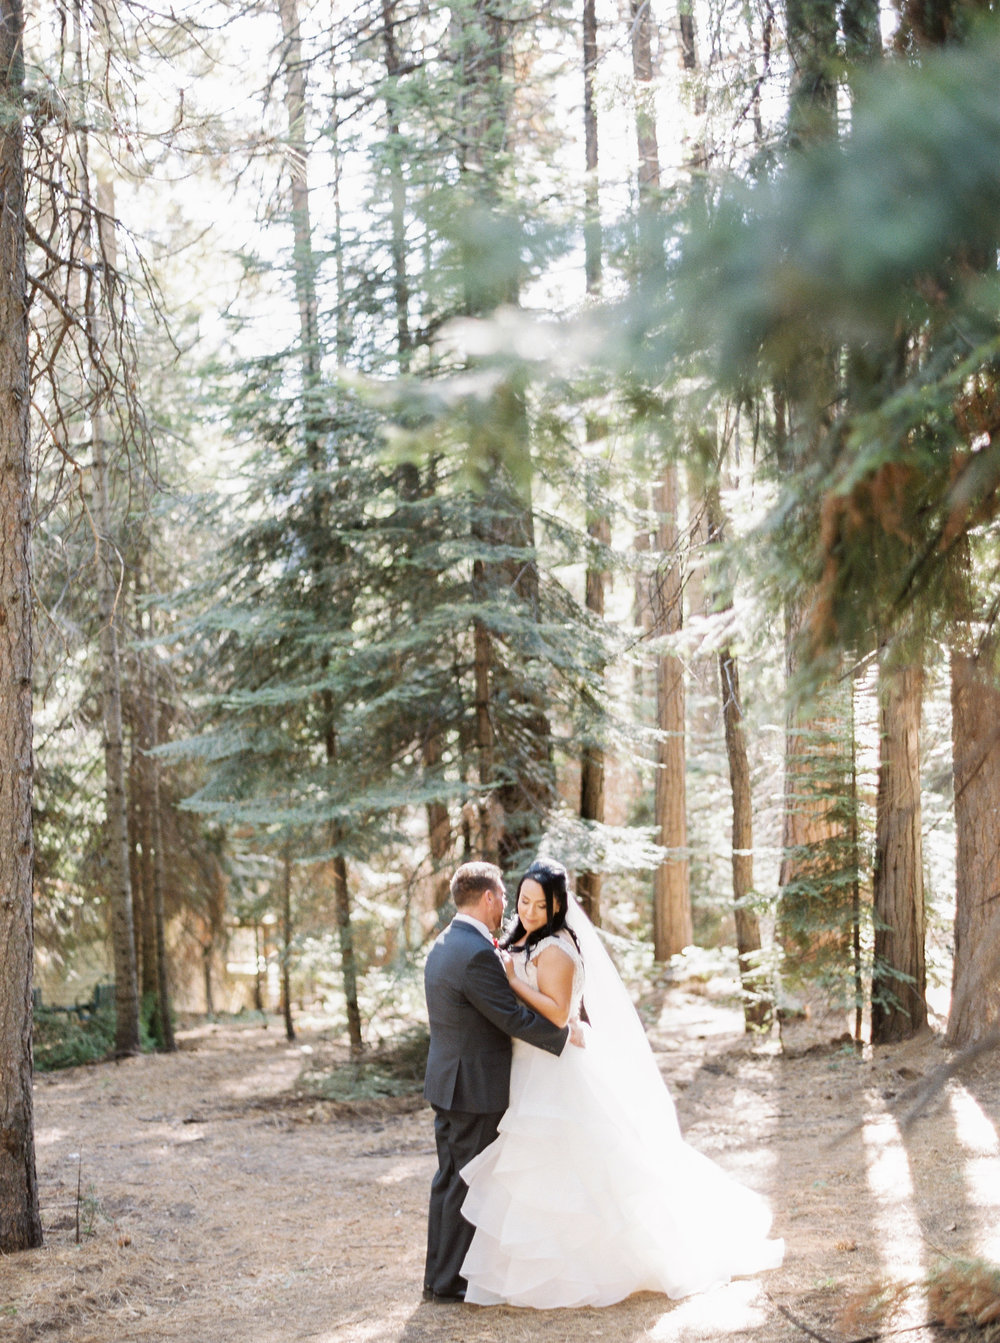 Tenaya-lodge-wedding-at-yosemite-national-park-california-1-3.jpg